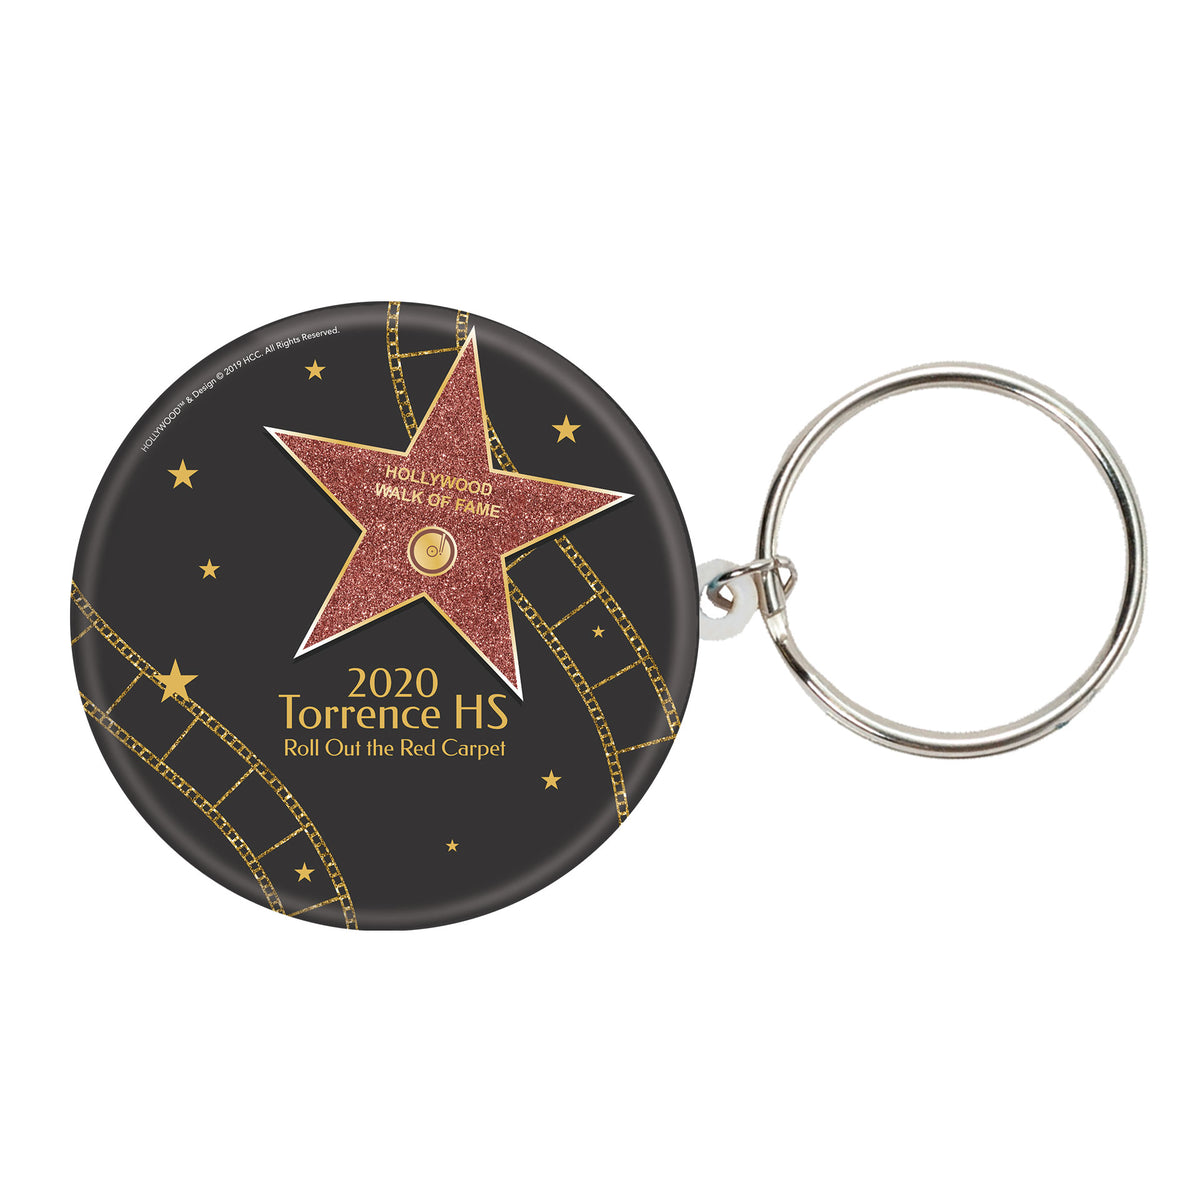 Hollywood Star Walk of Fame 3 Personalized Key Chain